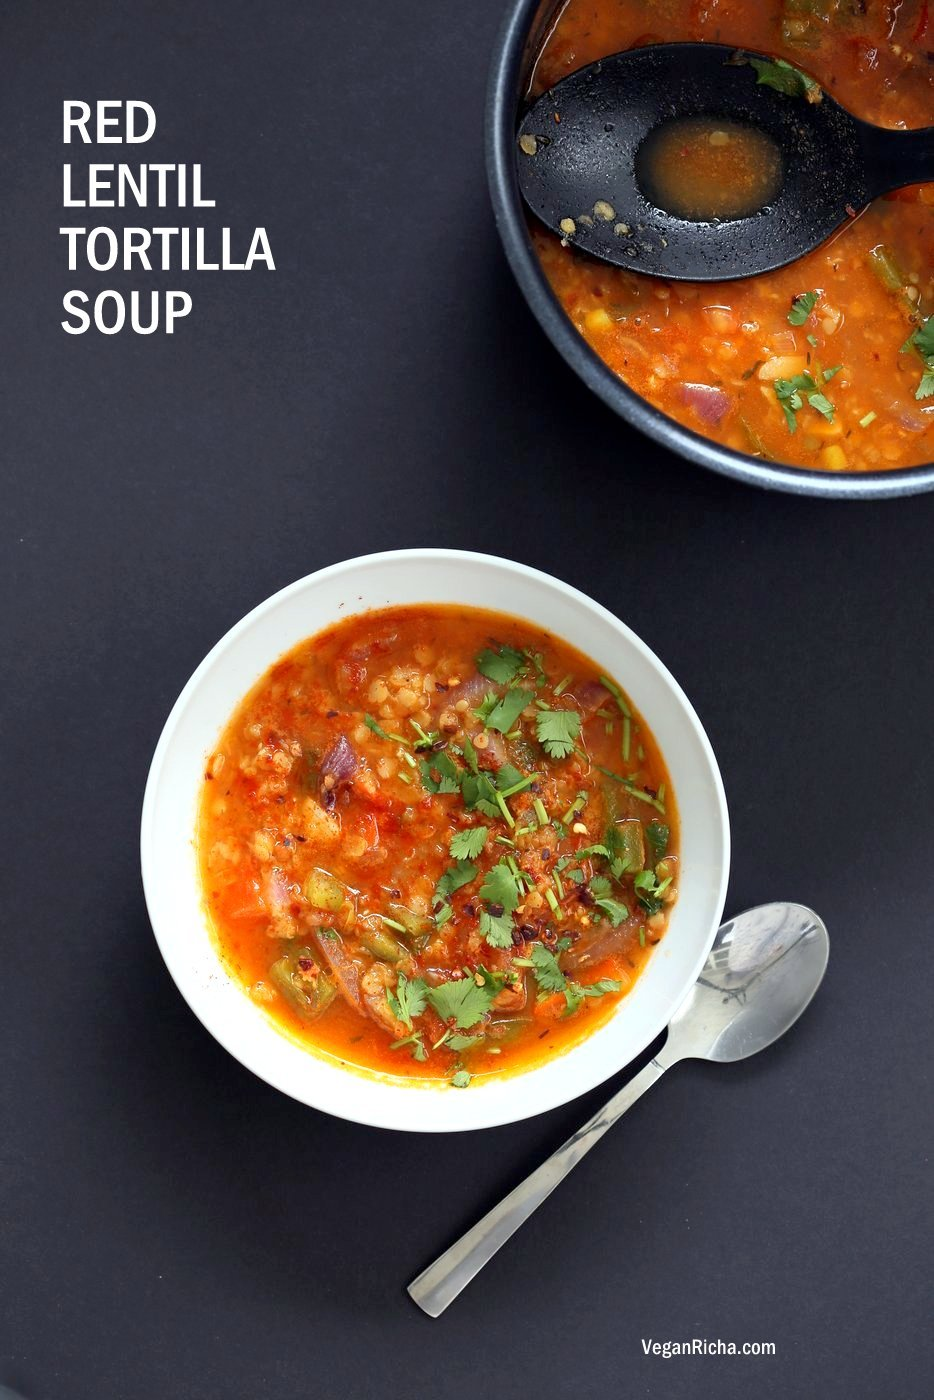 Easy Tortilla Soup with Red lentils. 1 Pot 30 minutes! Add veggies of choice, garnish with tortilla chips or avocado. Vegan Gluten-free Soy-free Nut-free Recipe Vegetarian Tortilla Soup | VeganRicha.comEasy Tortilla Soup with Red lentils. 1 Pot 30 minutes! Add veggies of choice, garnish with tortilla chips or avocado. Vegan Gluten-free Soy-free Nut-free Recipe Vegetarian Tortilla Soup | VeganRicha.com